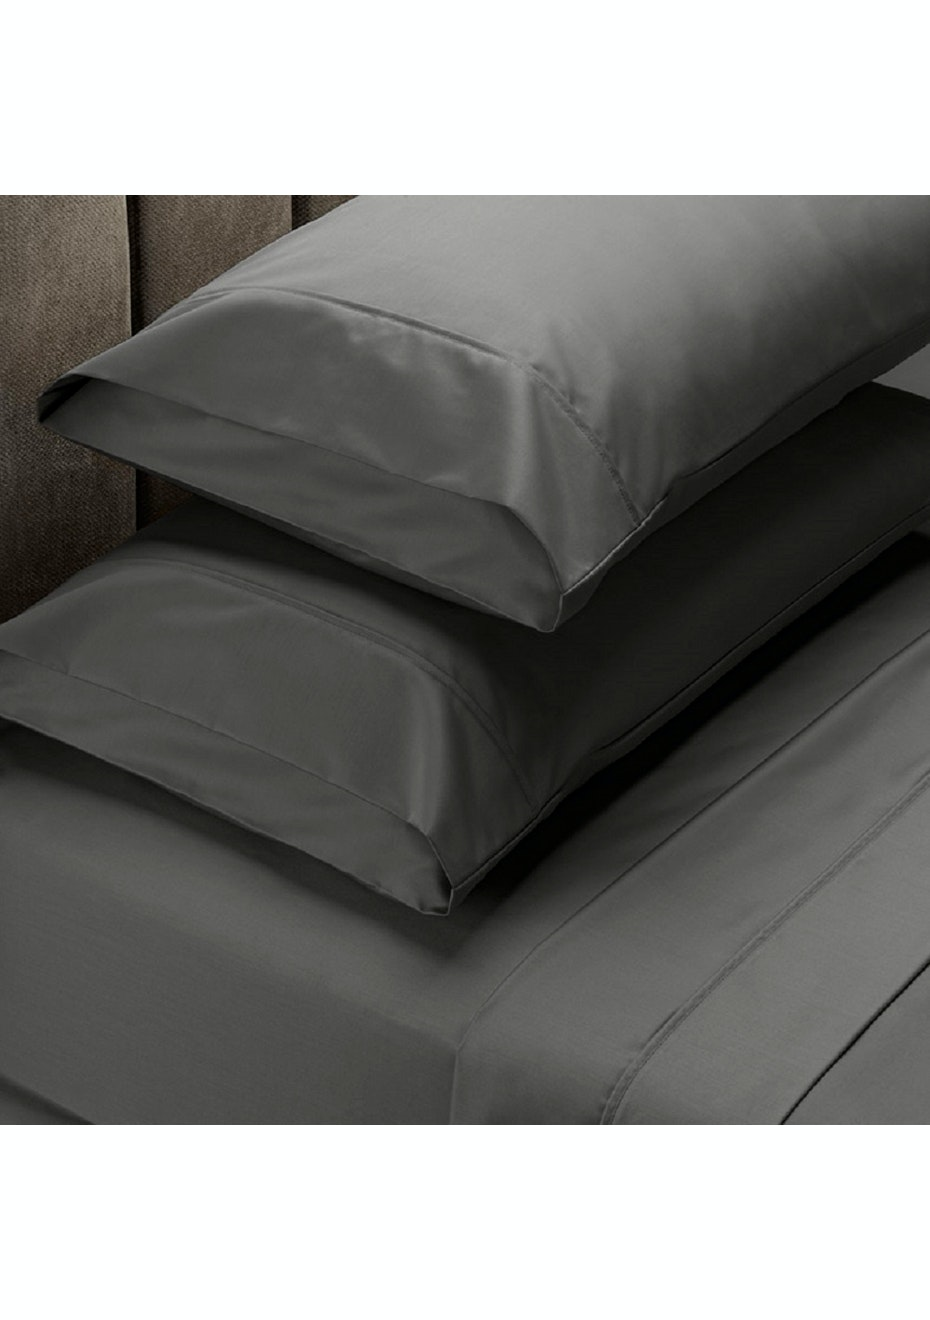 Park Avenue 1000 Thread count 100% Egyptian Cotton Sheet sets Mega King - Granite